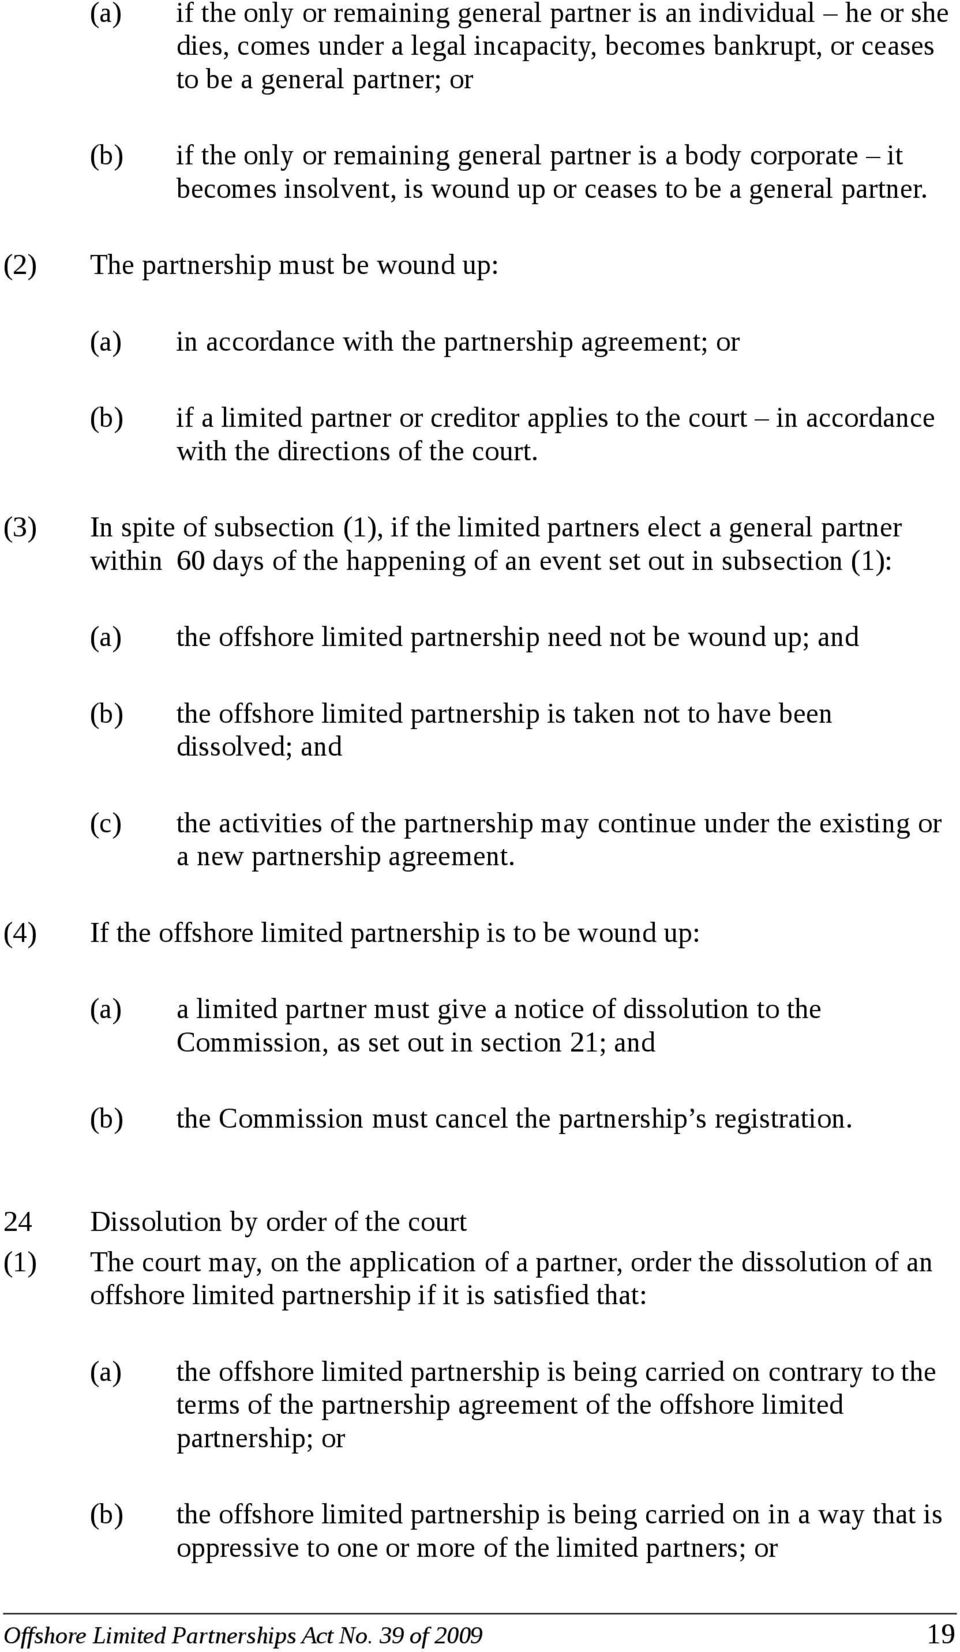 (2) The partnership must be wound up: in accordance with the partnership agreement; or if a limited partner or creditor applies to the court in accordance with the directions of the court.